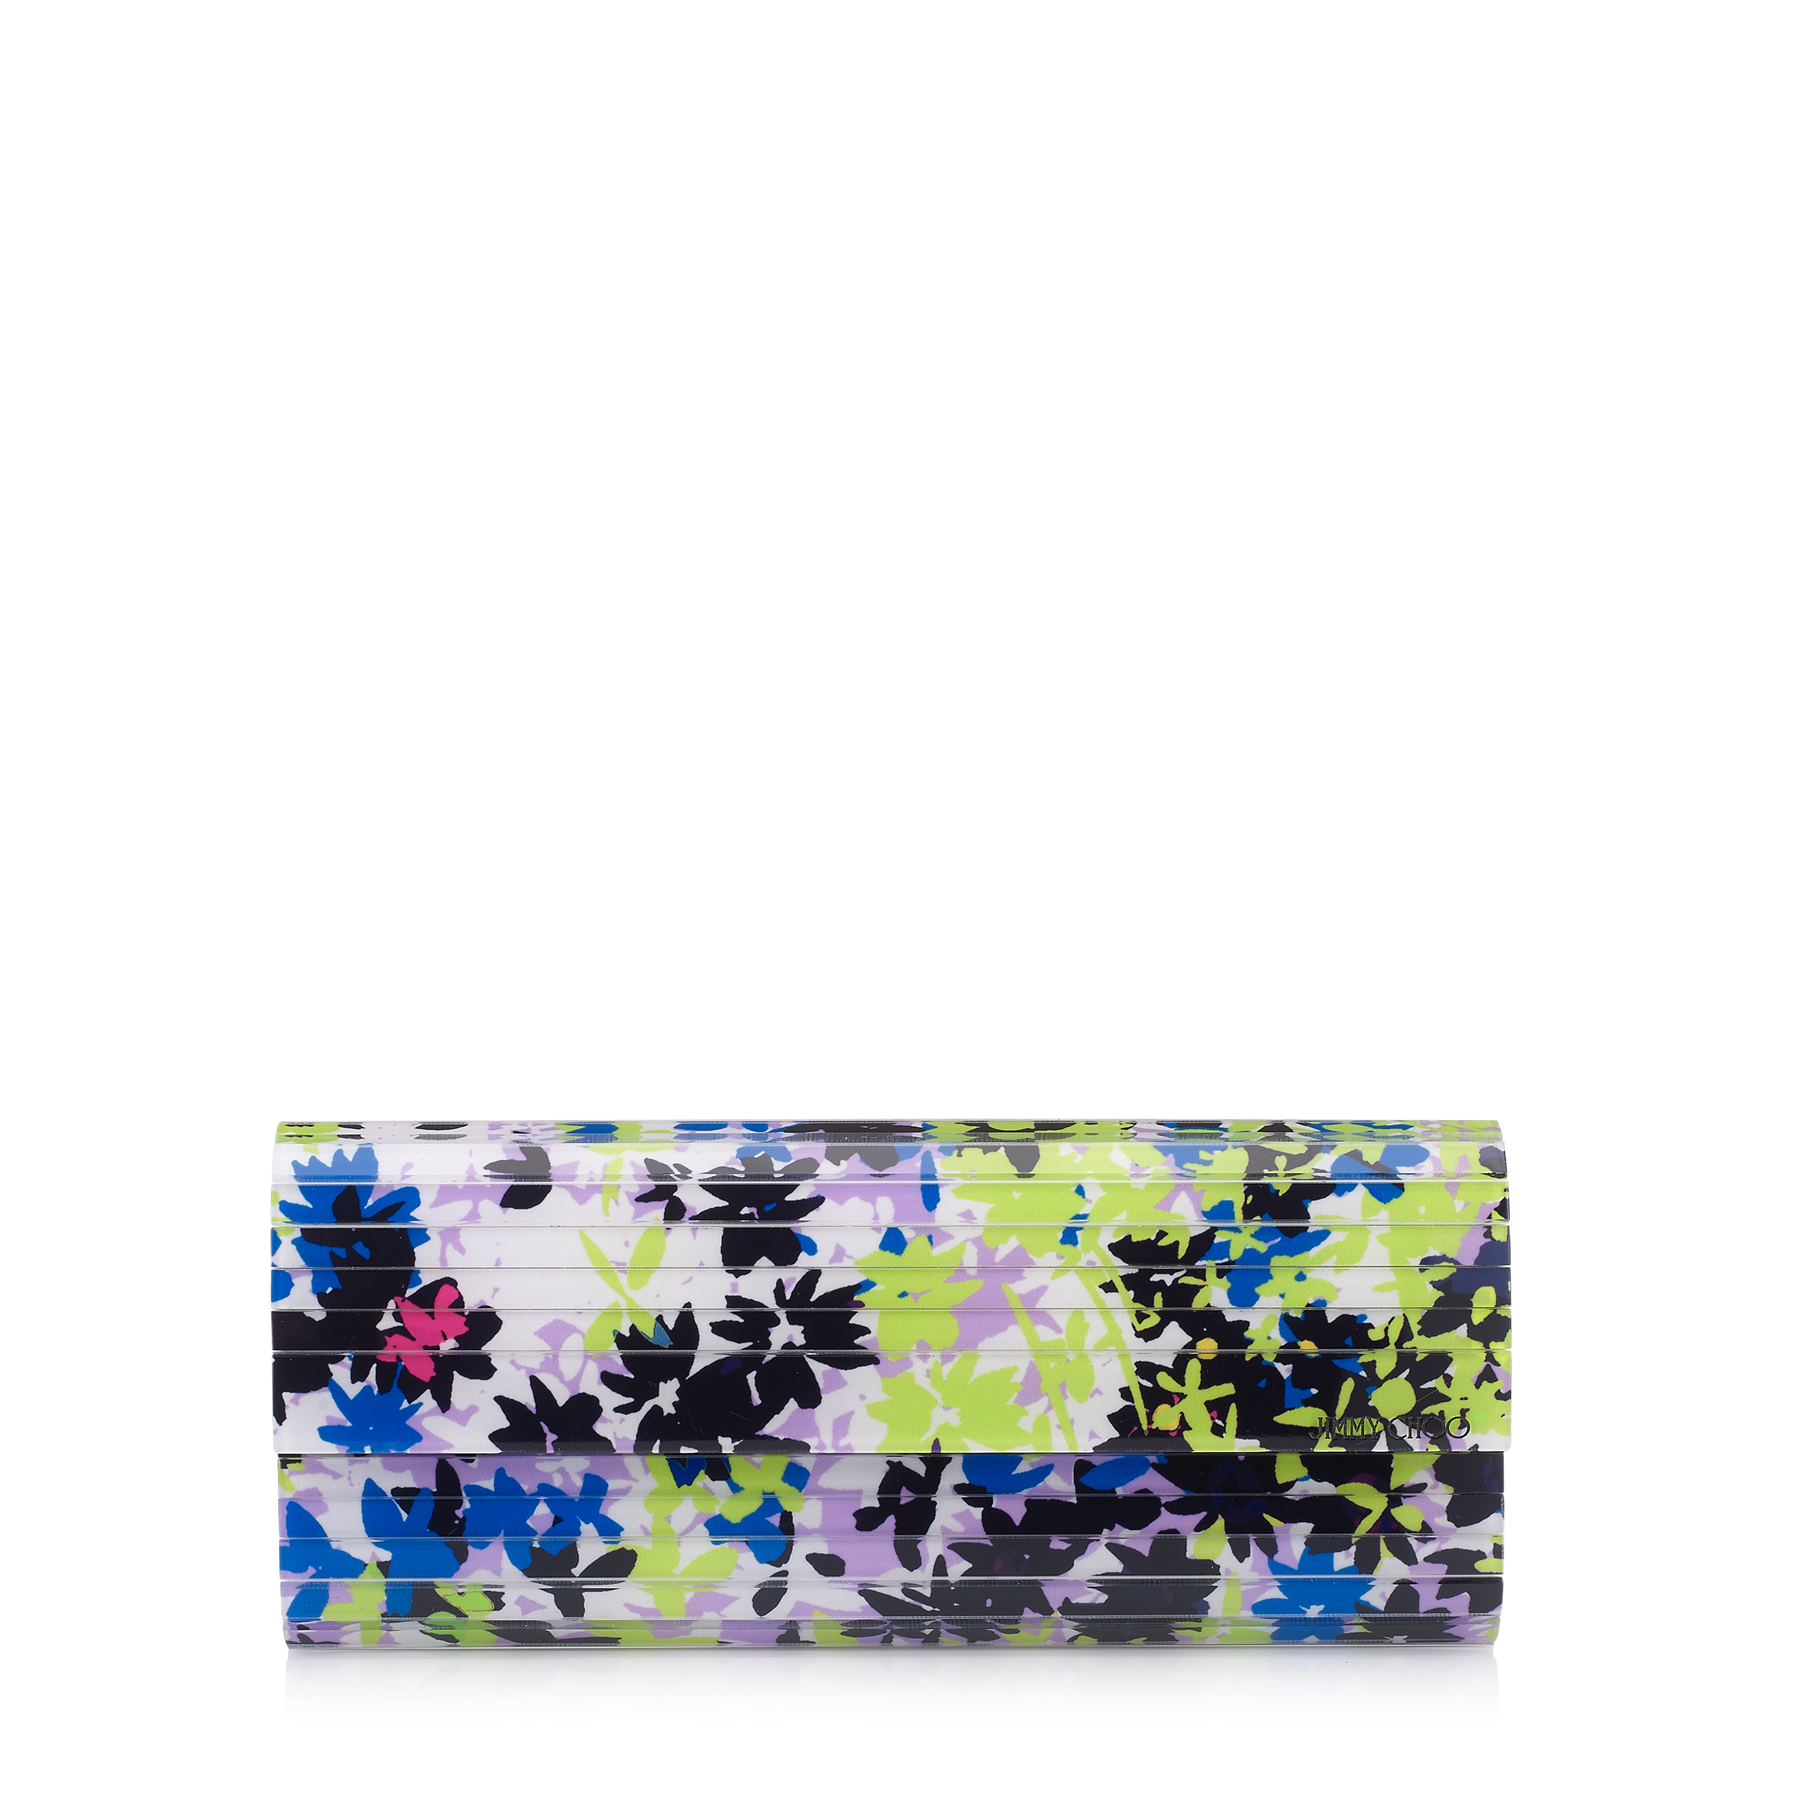 SWEETIE Apple and Lilac Camoflower Print Acrylic Clutch Bag